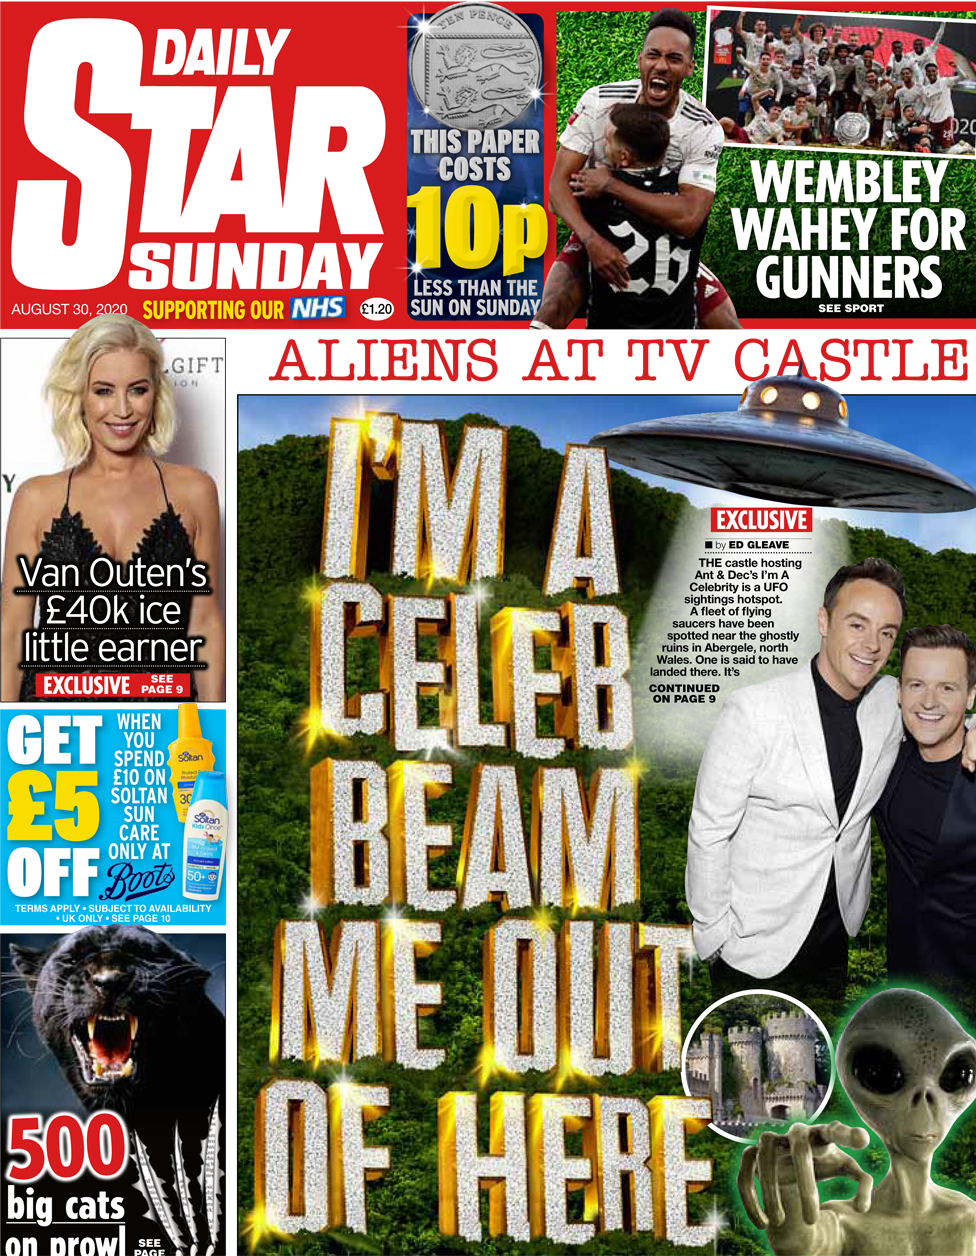 The Daily Star Sunday front page 30 August 2020